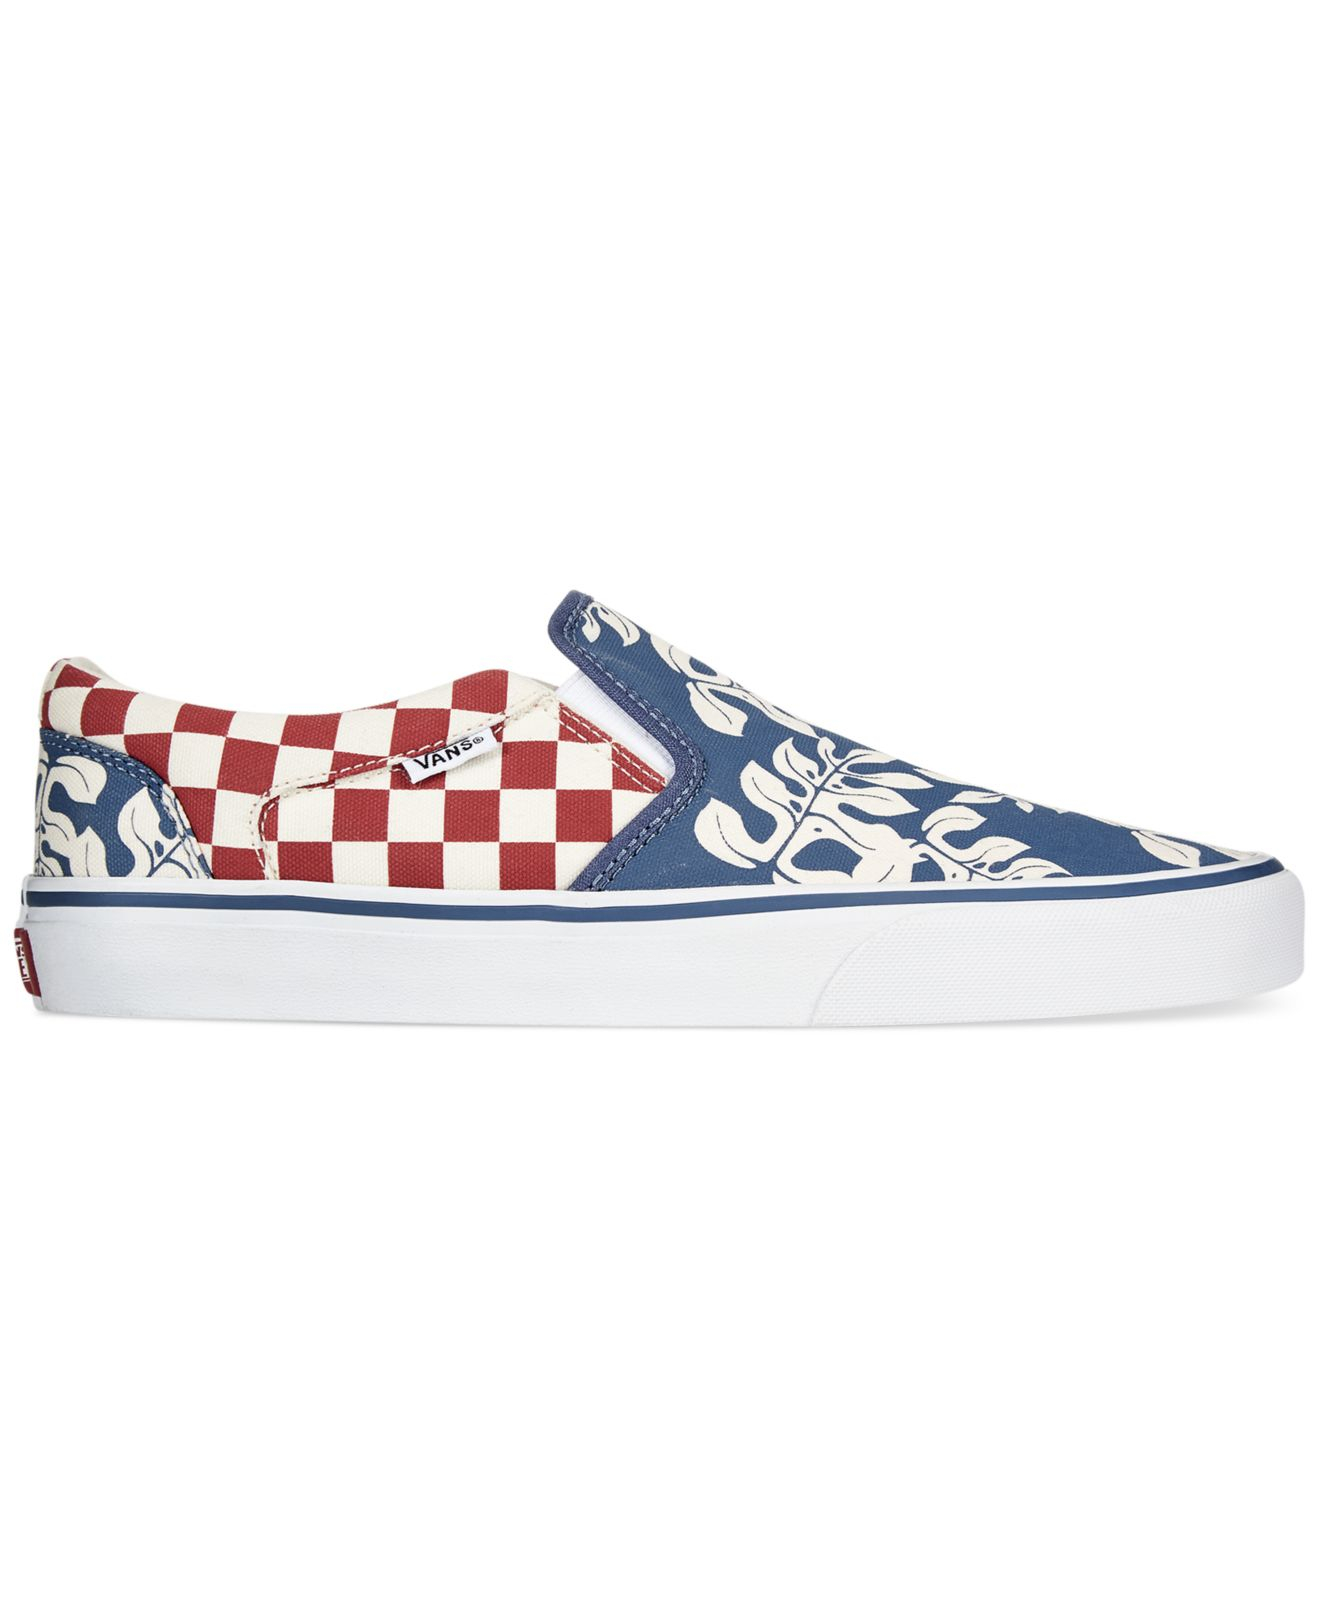 838a5d57c1141a Lyst - Vans Asher Slip-On Sneakers in Blue for Men